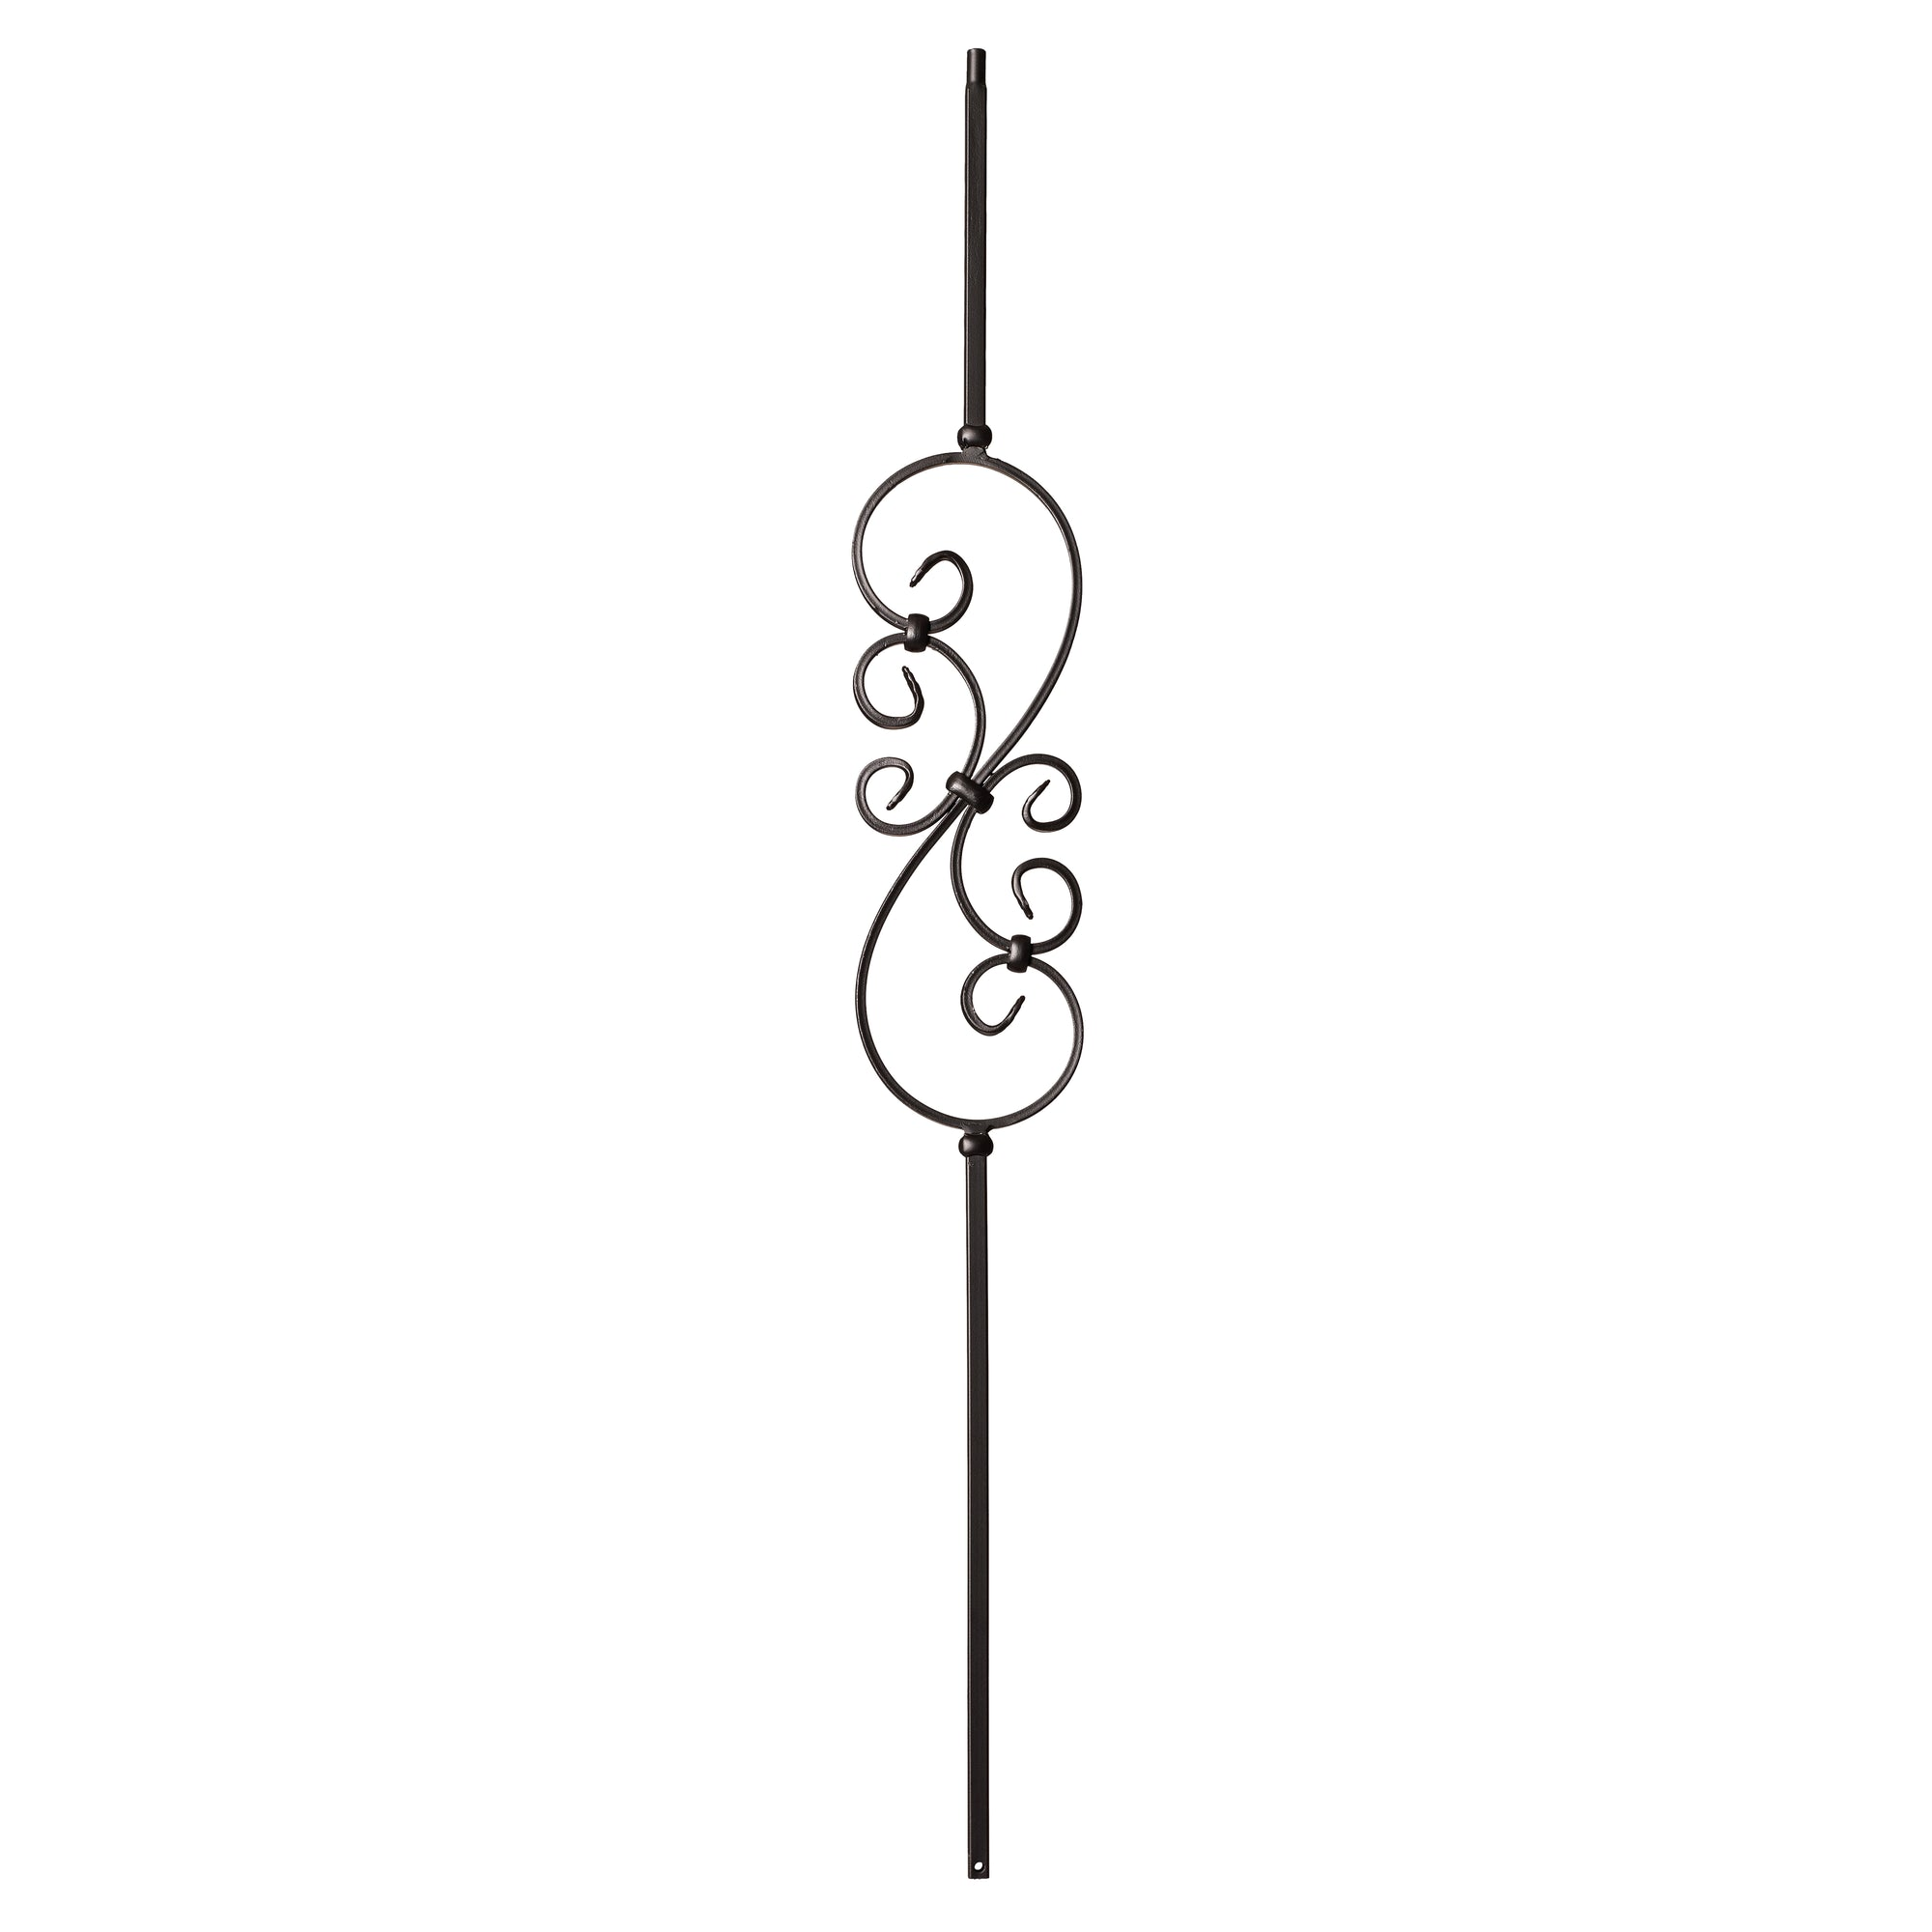 "Scroll Series 1/2"" Square x 44""H Small S Scroll (5-3/8"" x 16"") Hollow Iron Baluster (9008)"